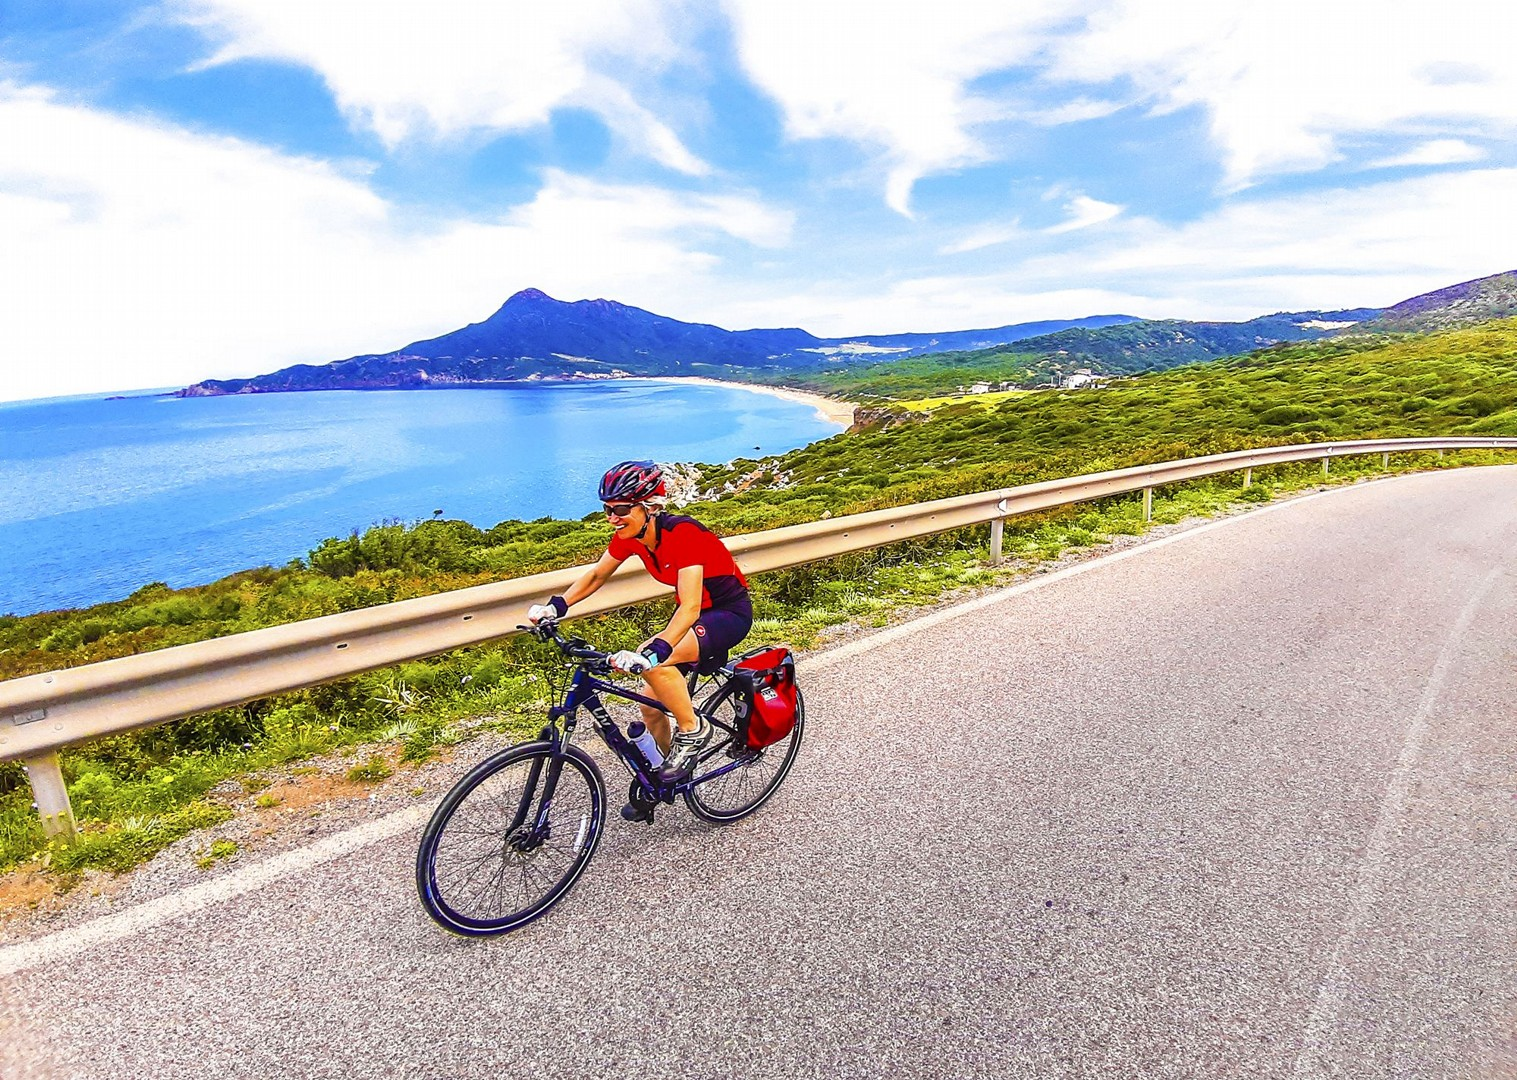 leisure-cycling-island-flavours-holiday-saddle-skedaddle-sardinia.jpg - Italy - Sardinia - Island Flavours - Guided Leisure Cycling Holiday - Italia Leisure and Family Cycling